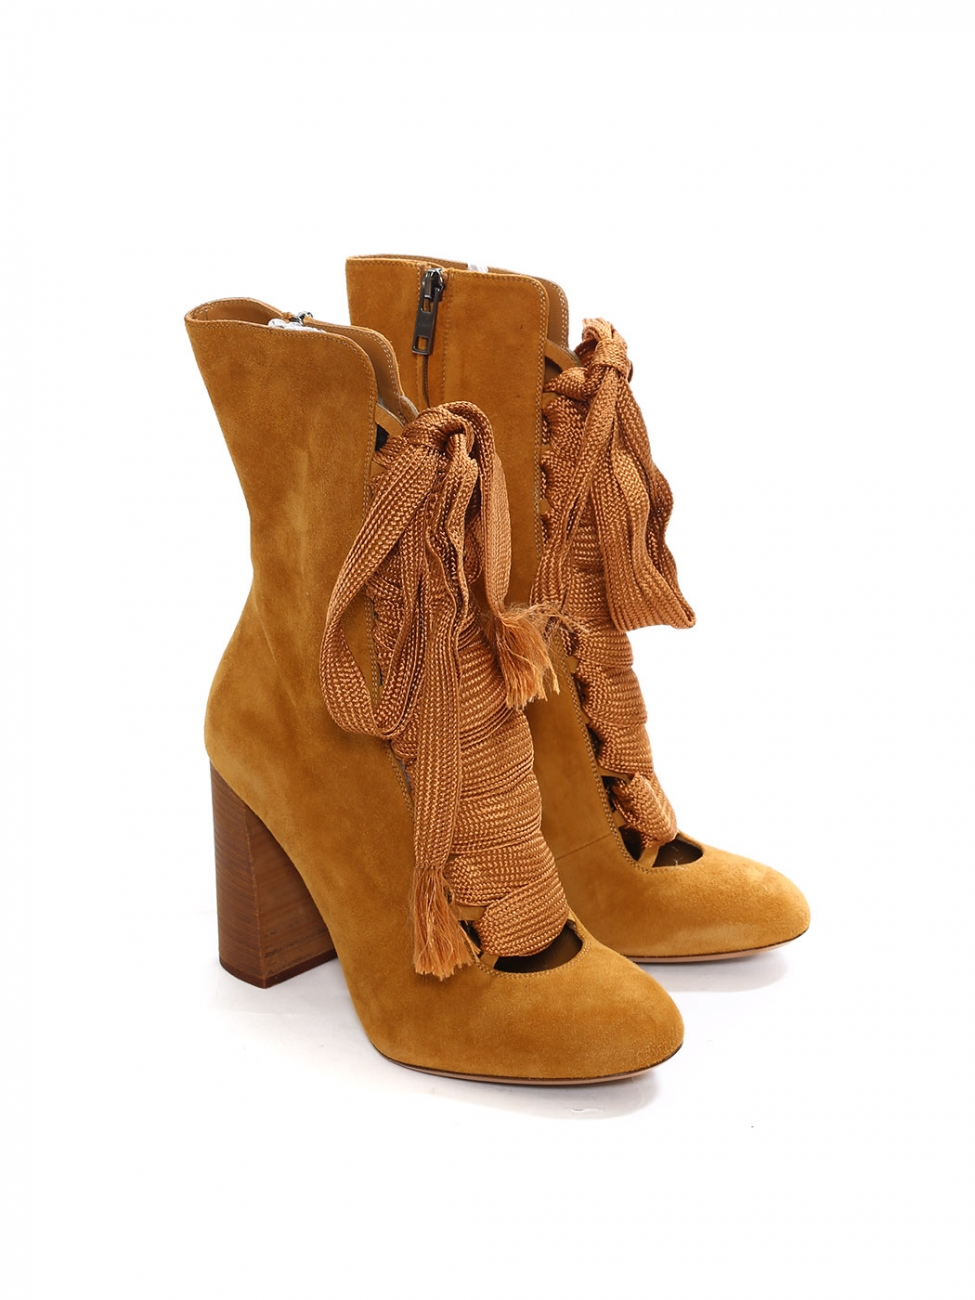 4a1dd2ac9e Louise Paris - CHLOE HARPER Tan brown suede leather wooden heel boots  Retail price €910 Size 39